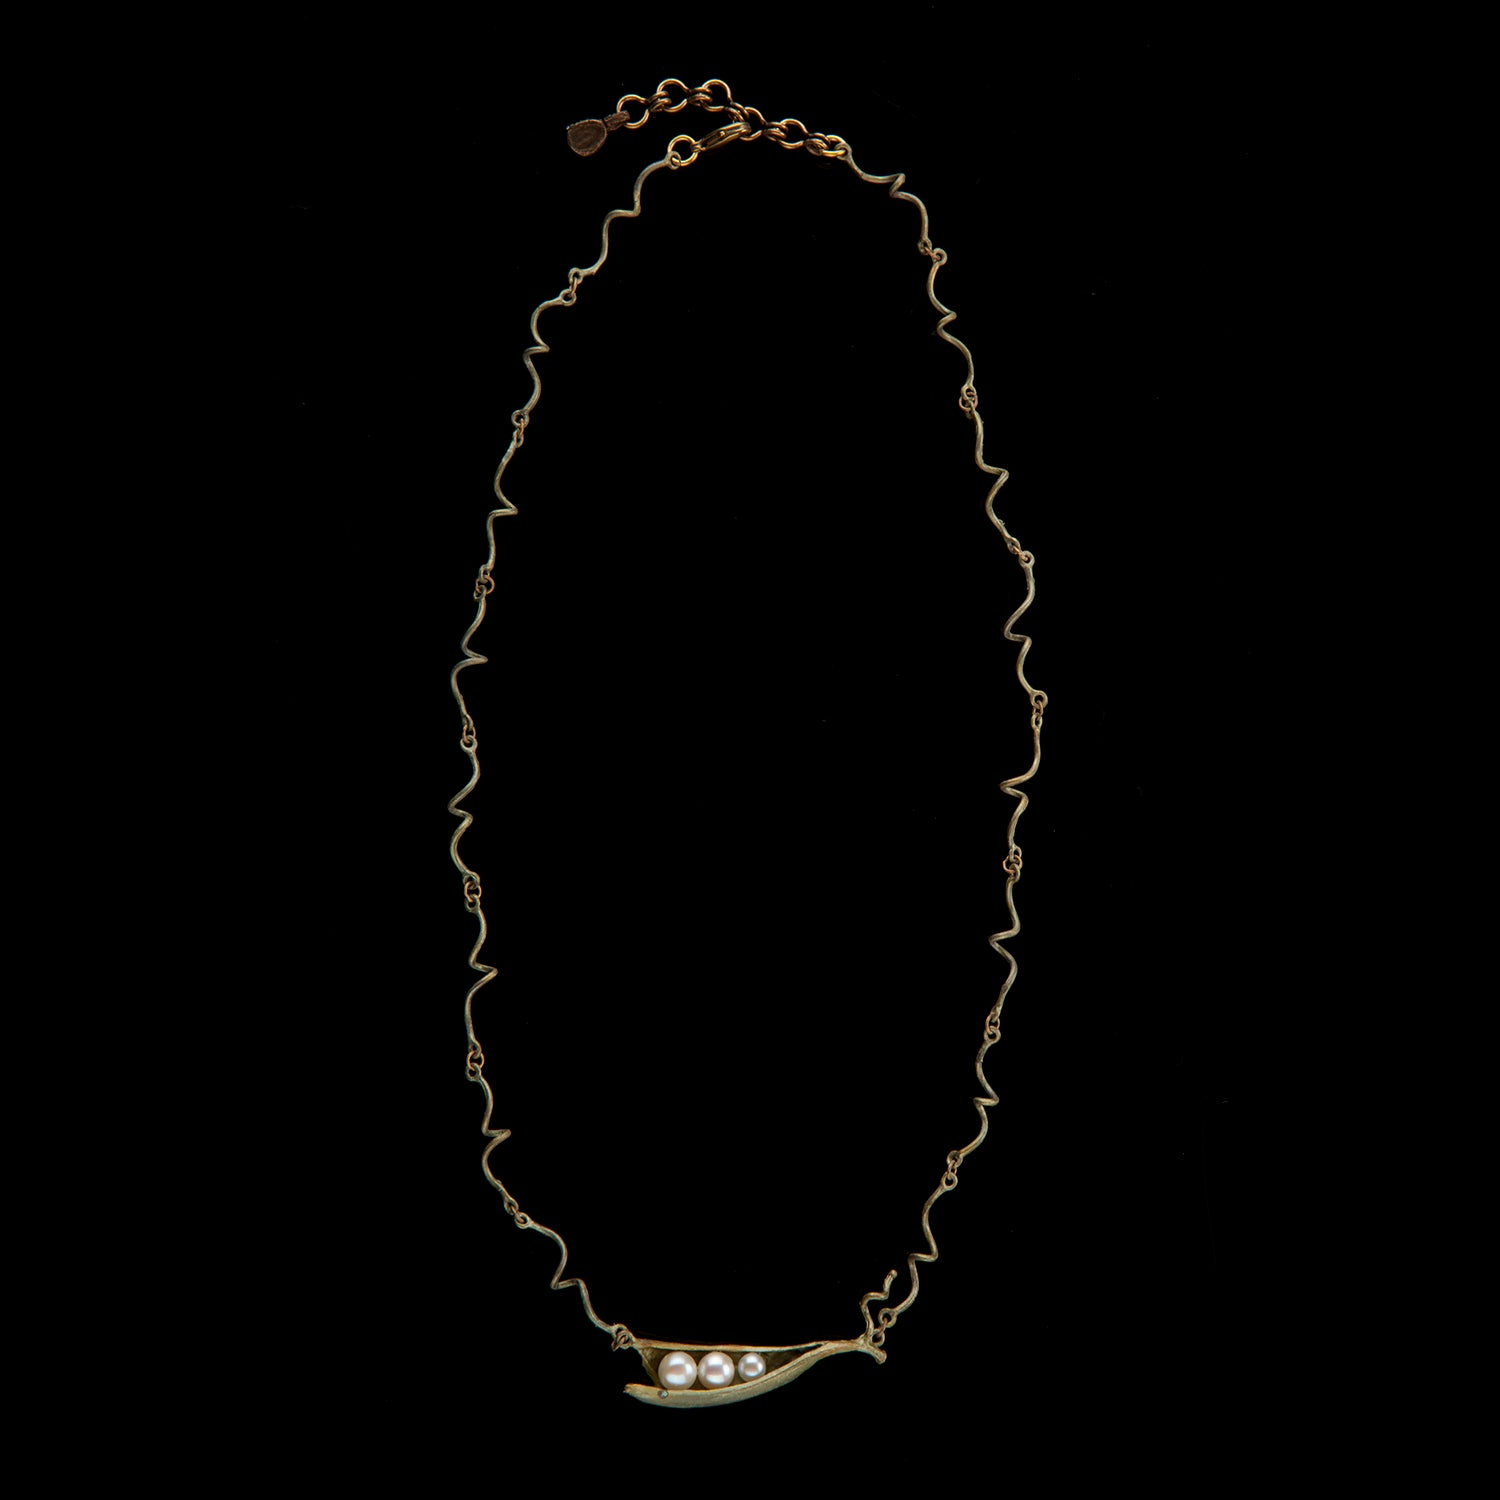 Pea Pod Necklace - Twigs